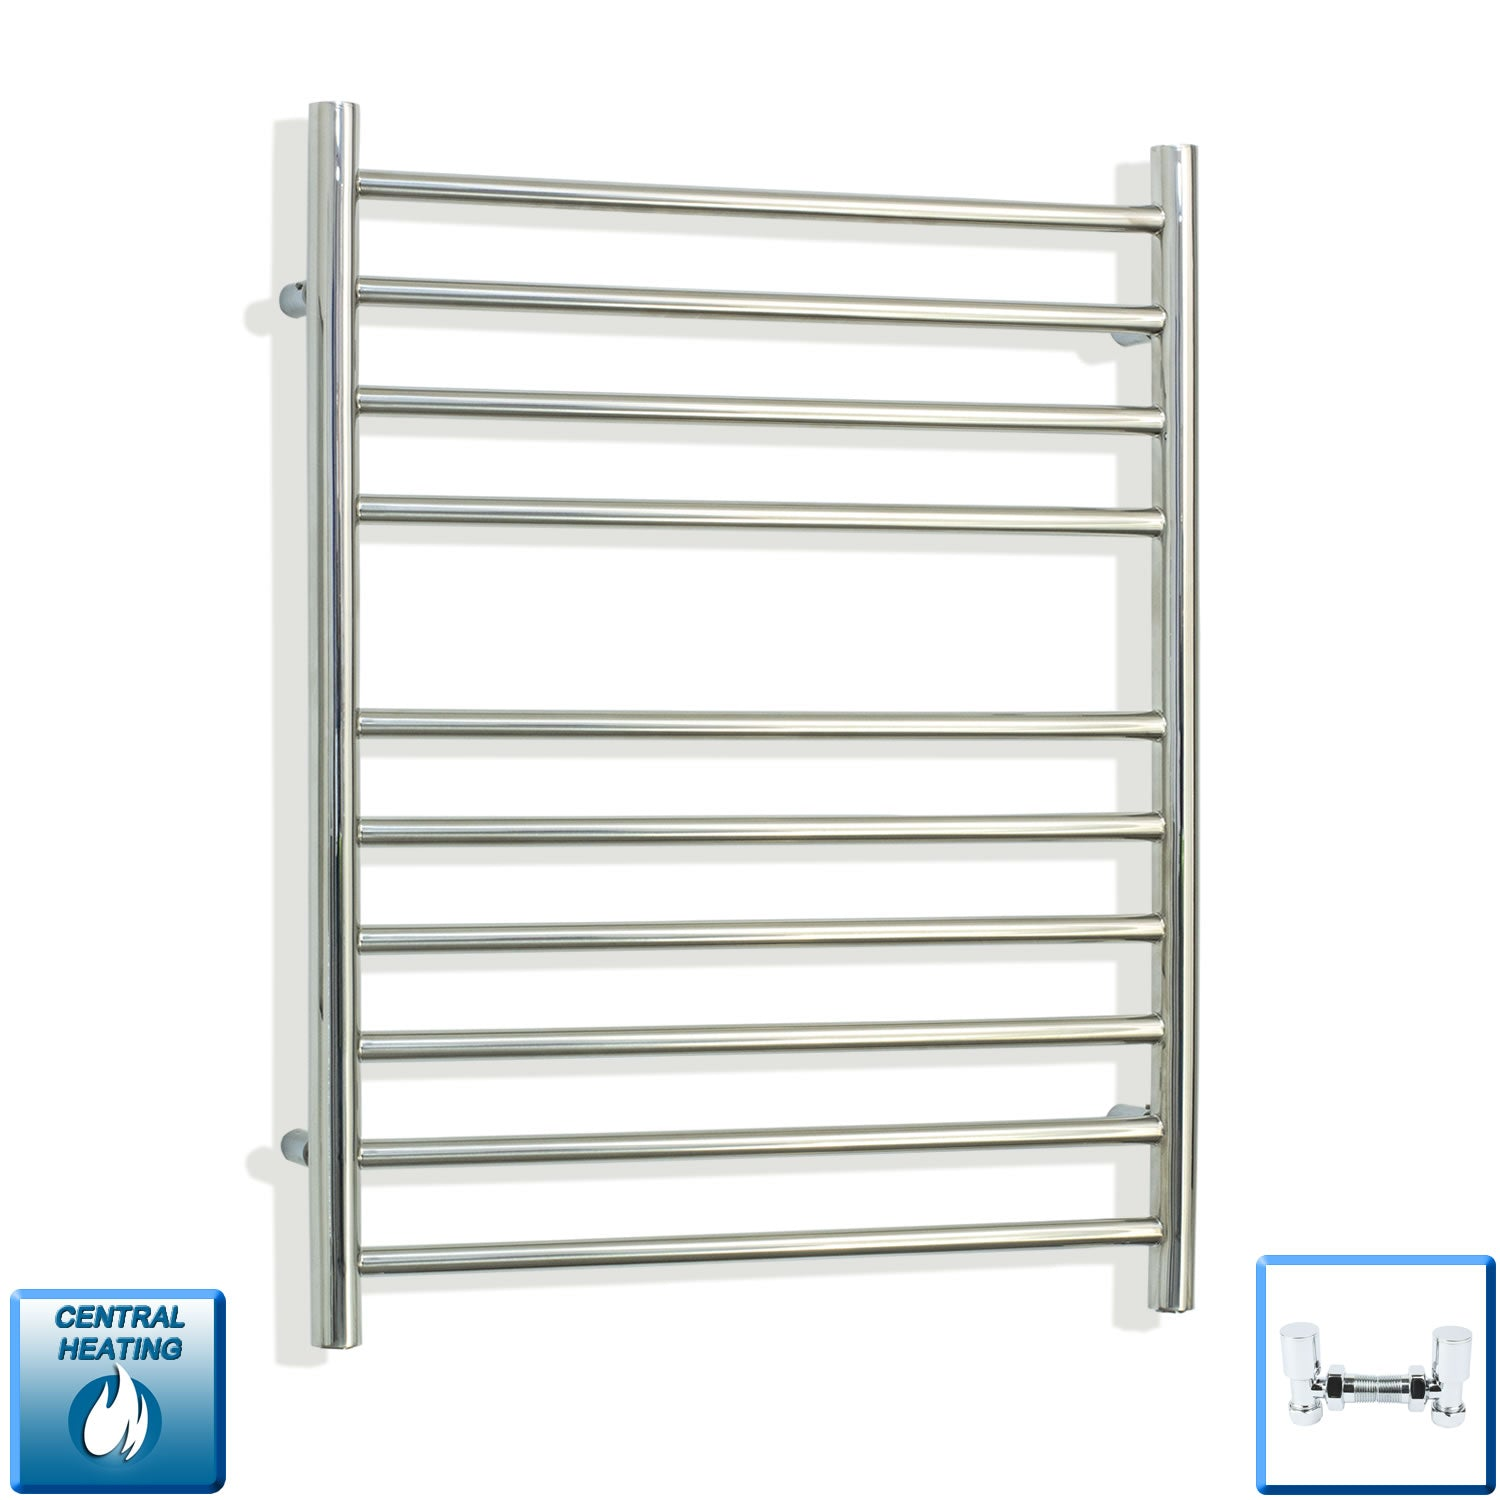 750 x 600 stainless steel towel rail radiator with angled valves pipes out of the wall